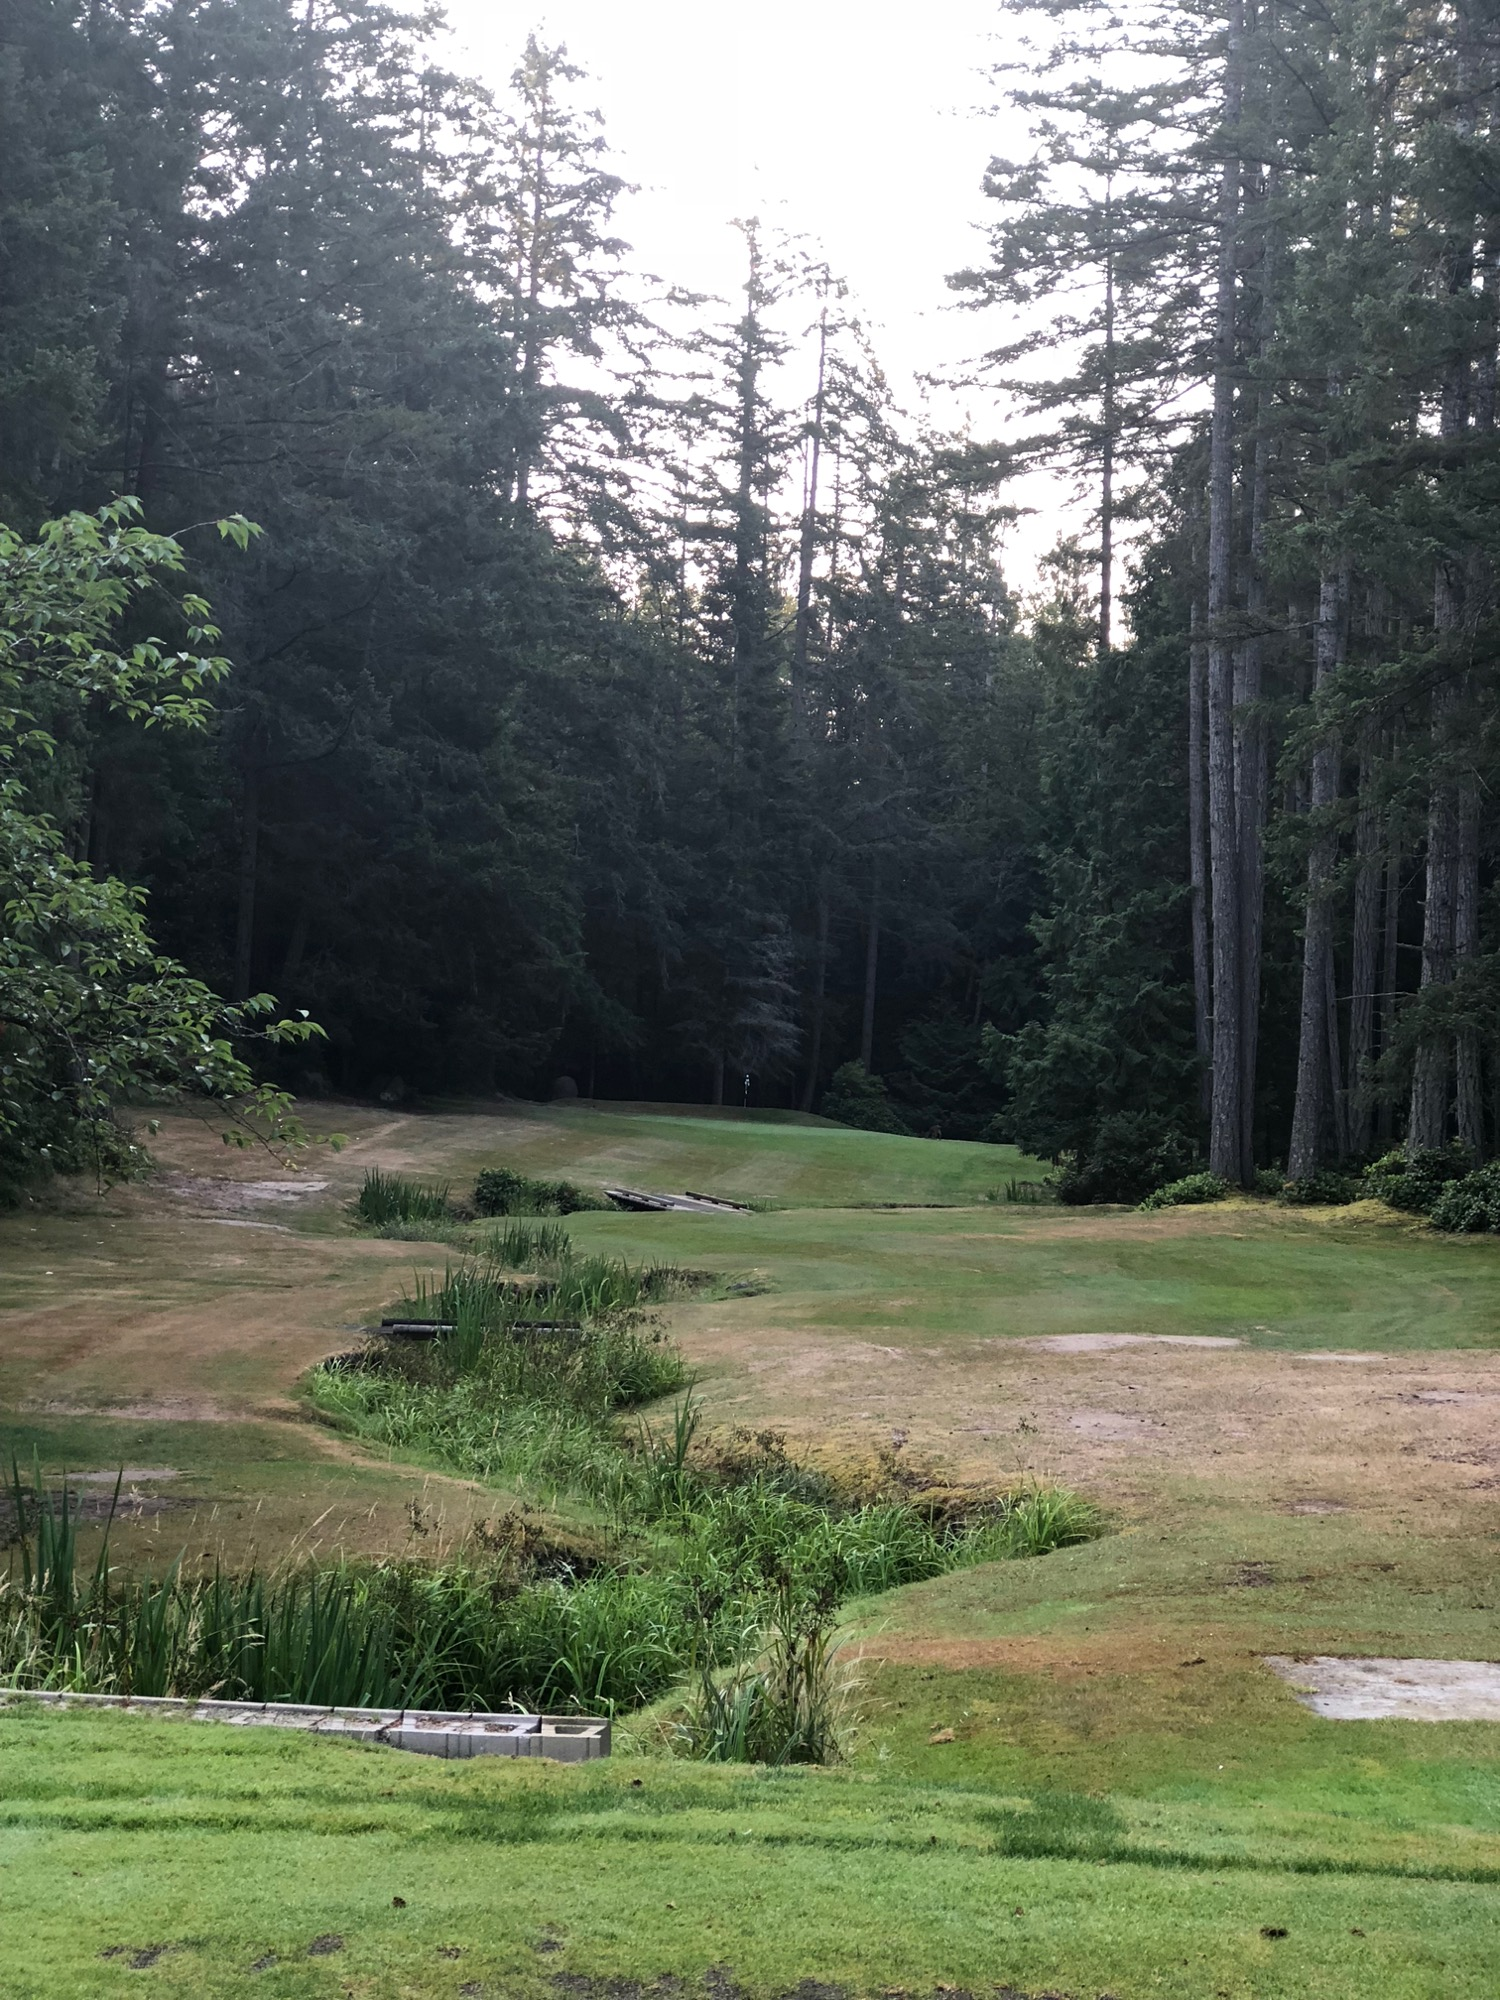 The very fun 3rd hole - there were 4 deer on this one.